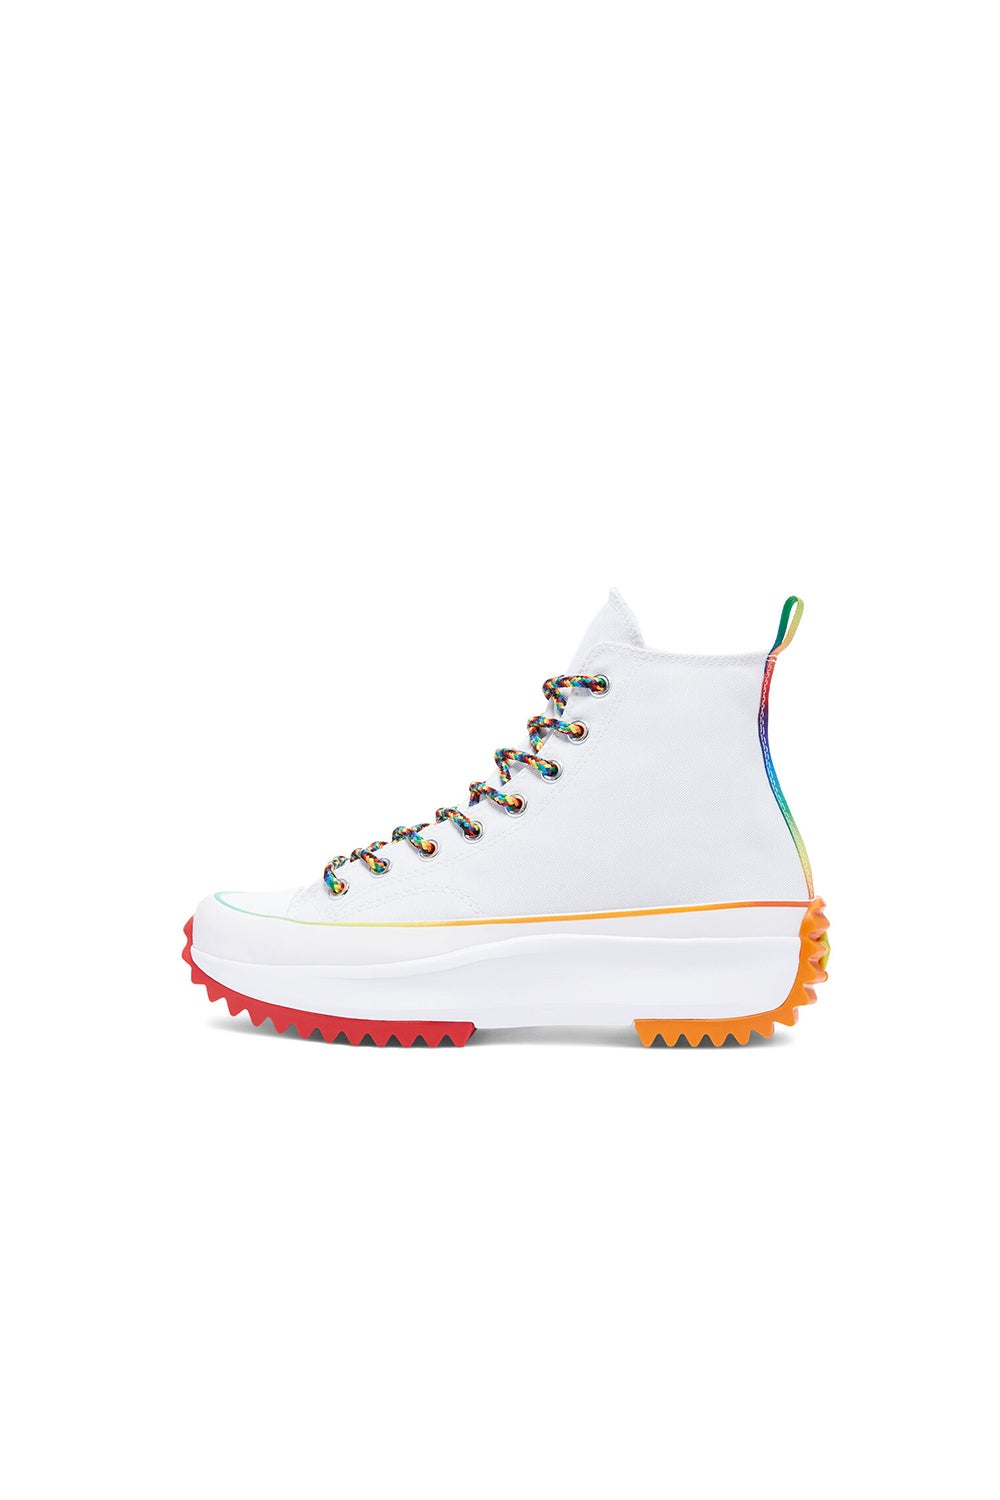 Converse Run Star Hike Find Your Pride High Top White/Multi/White